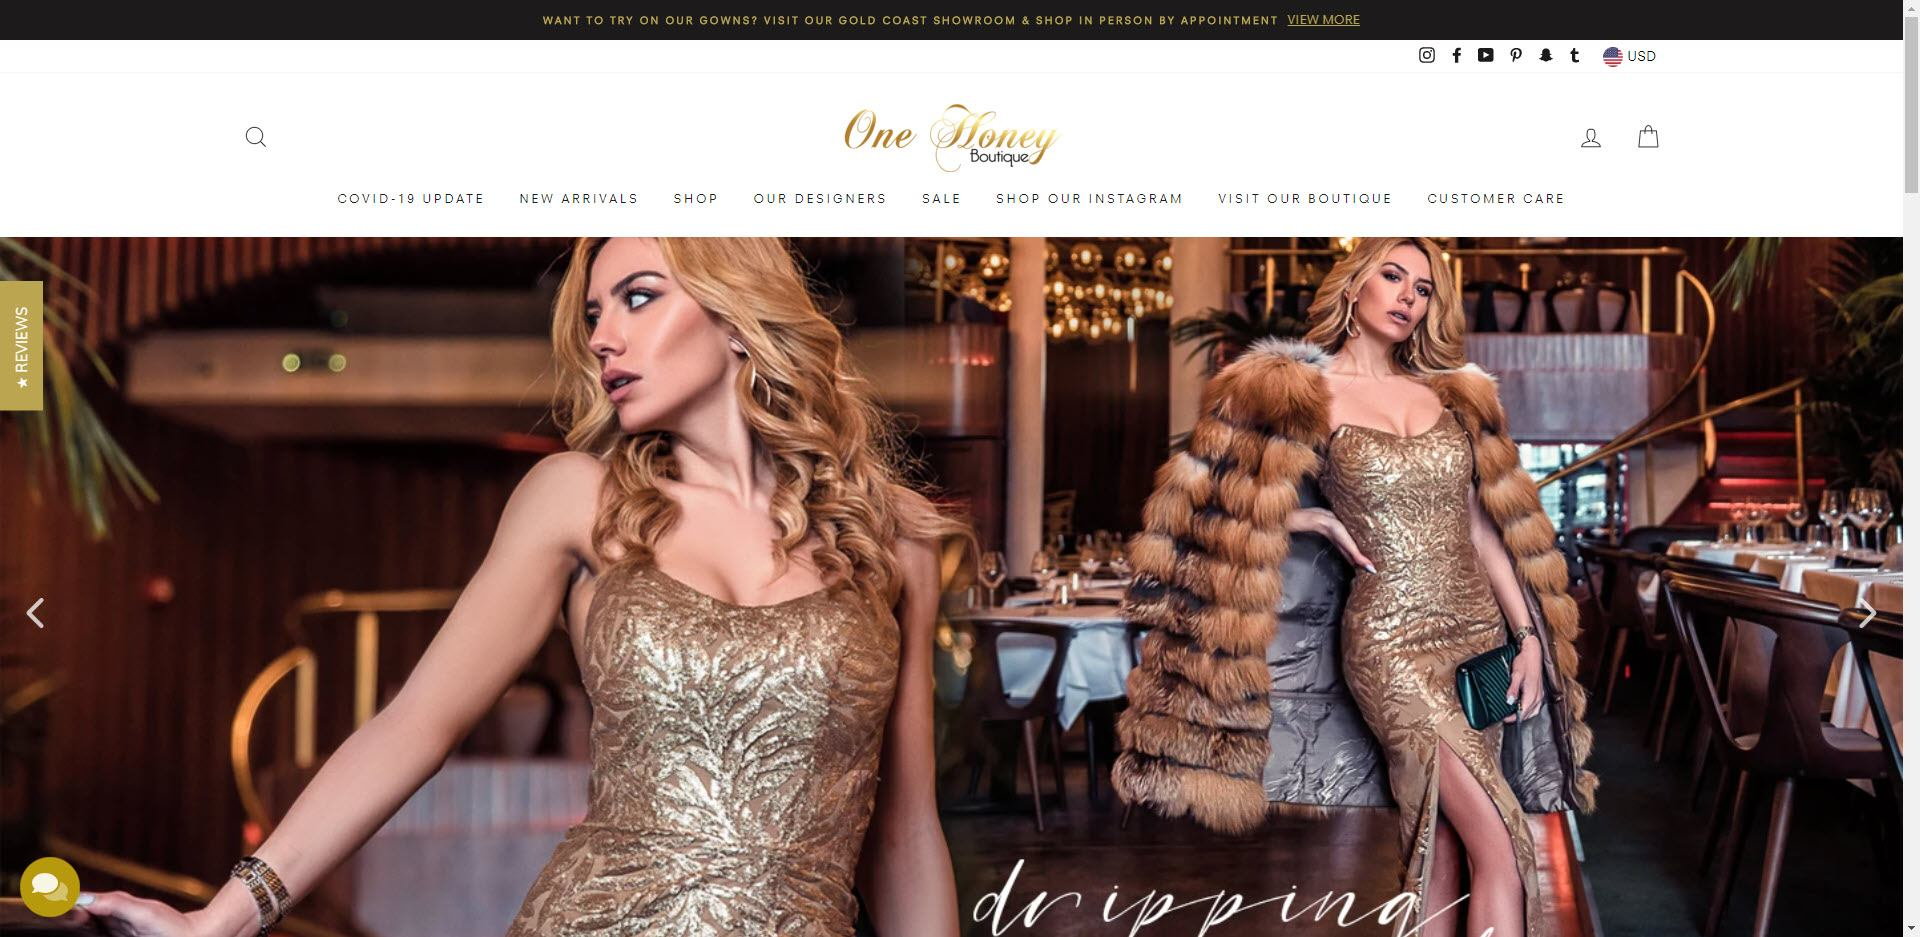 Fashion Designer Affiliate Programs - One Honey Boutique